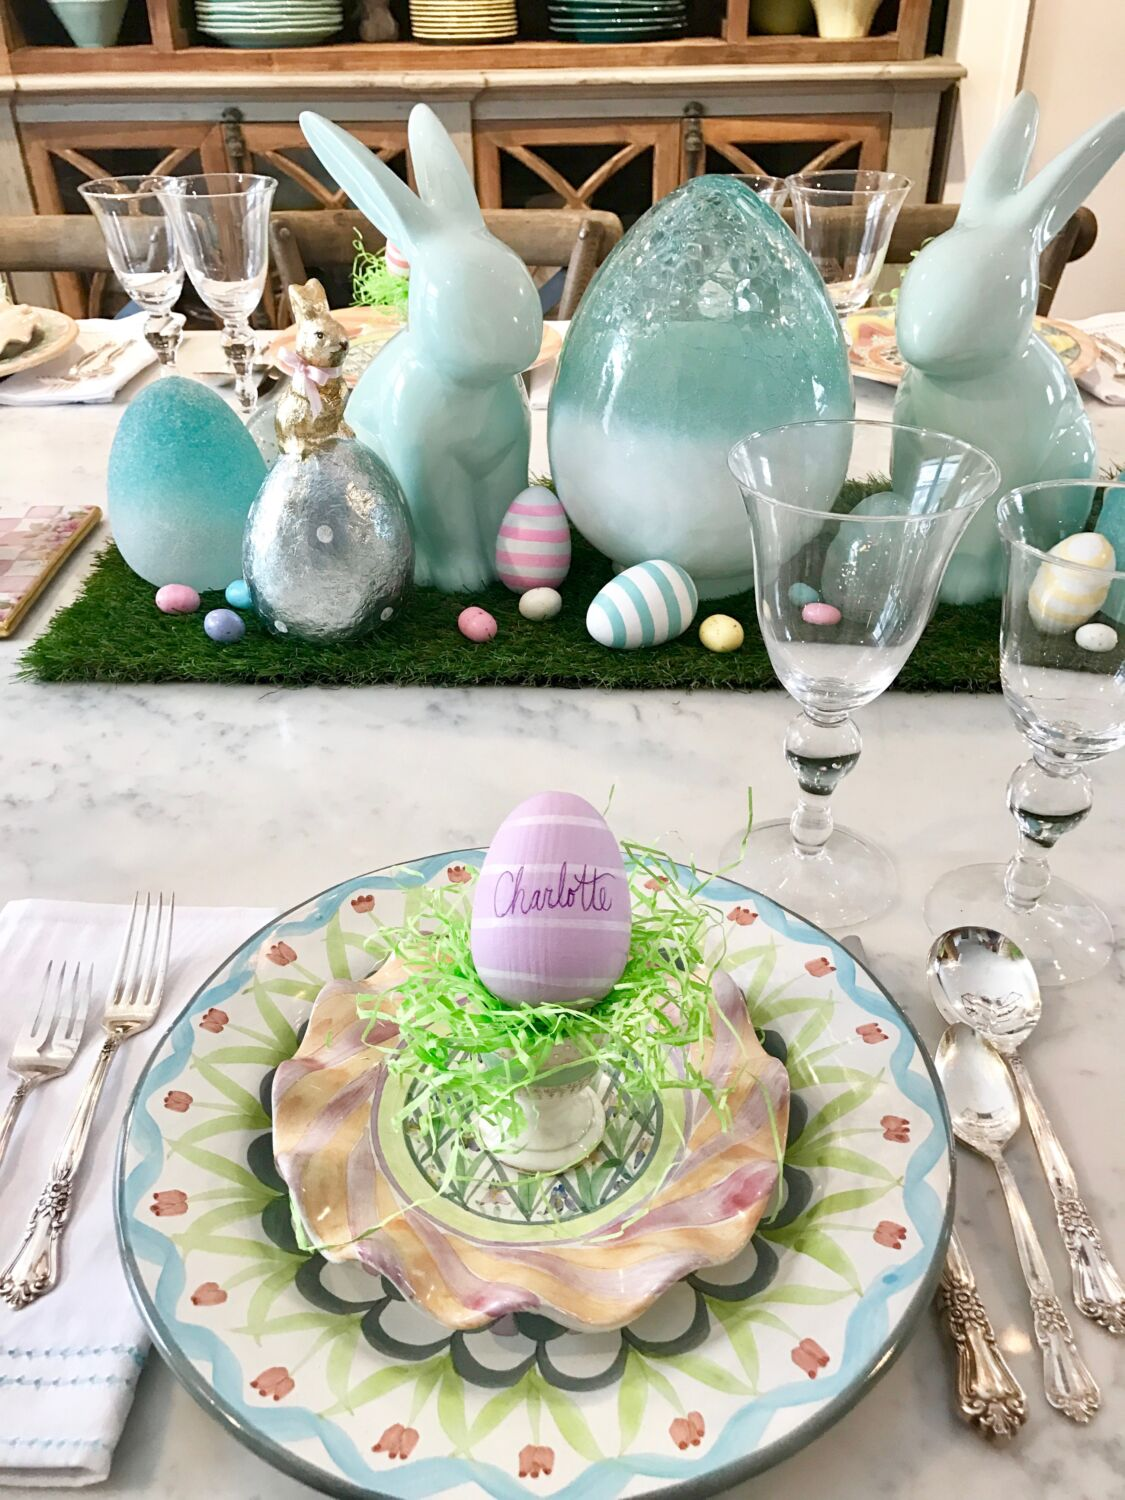 Easter parade blog hop setting the farmhouse table for brunch for Home goods easter decorations